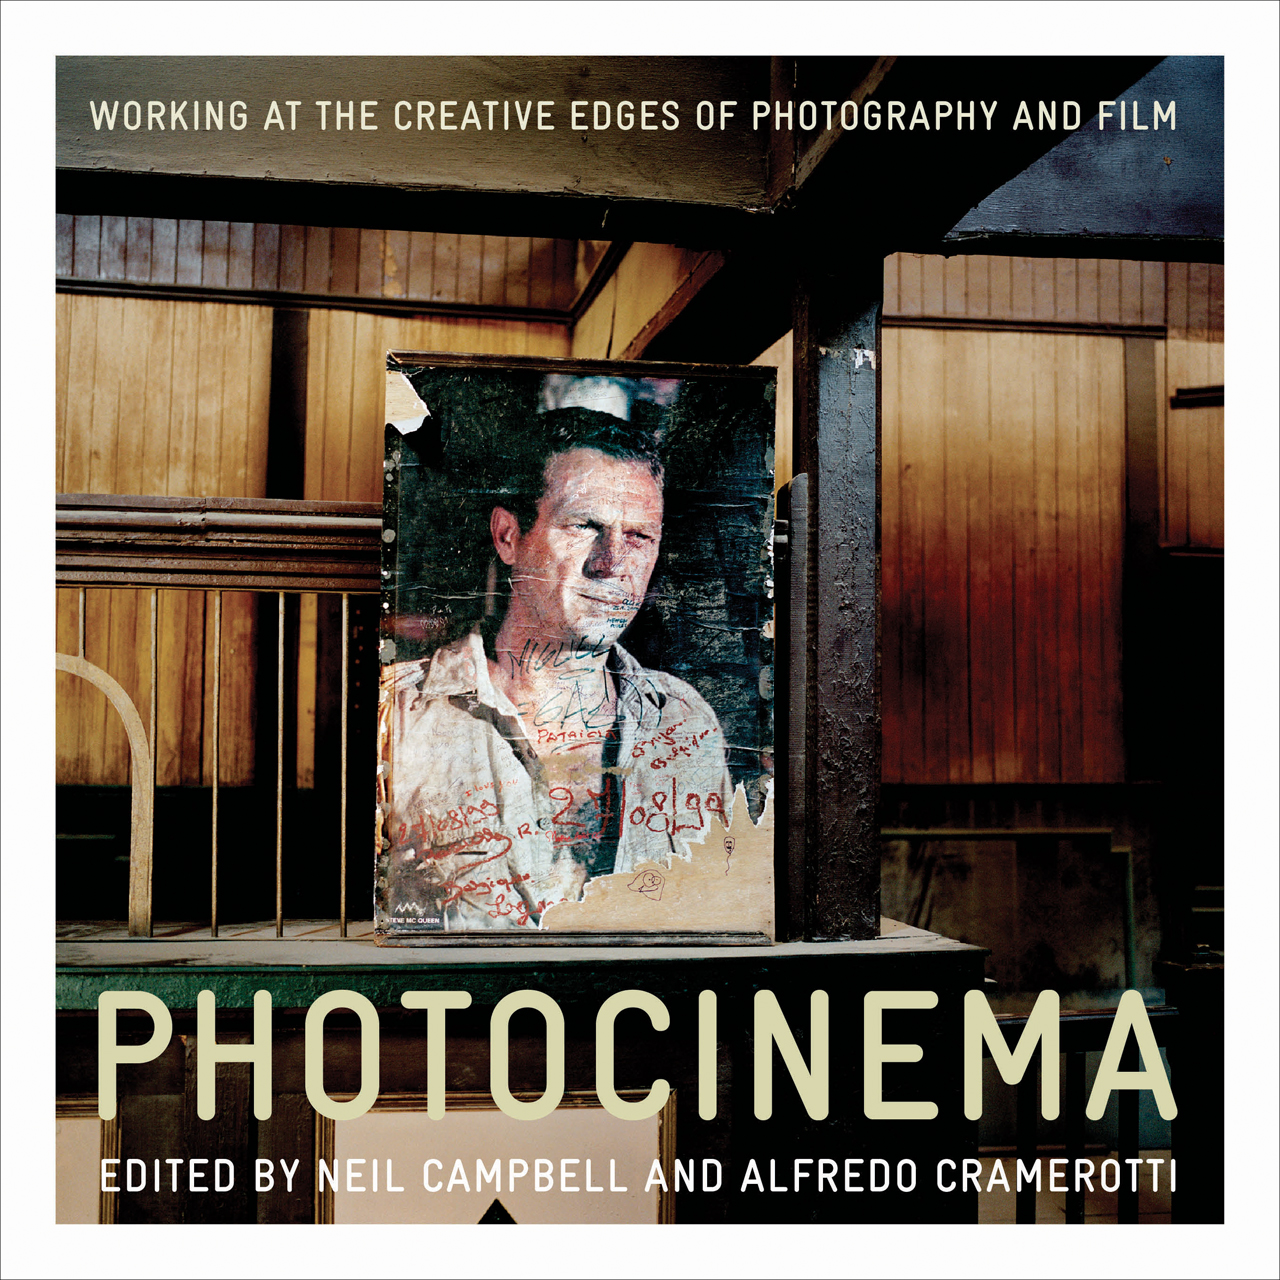 Photocinema: The Creative Edges of Photography and Film